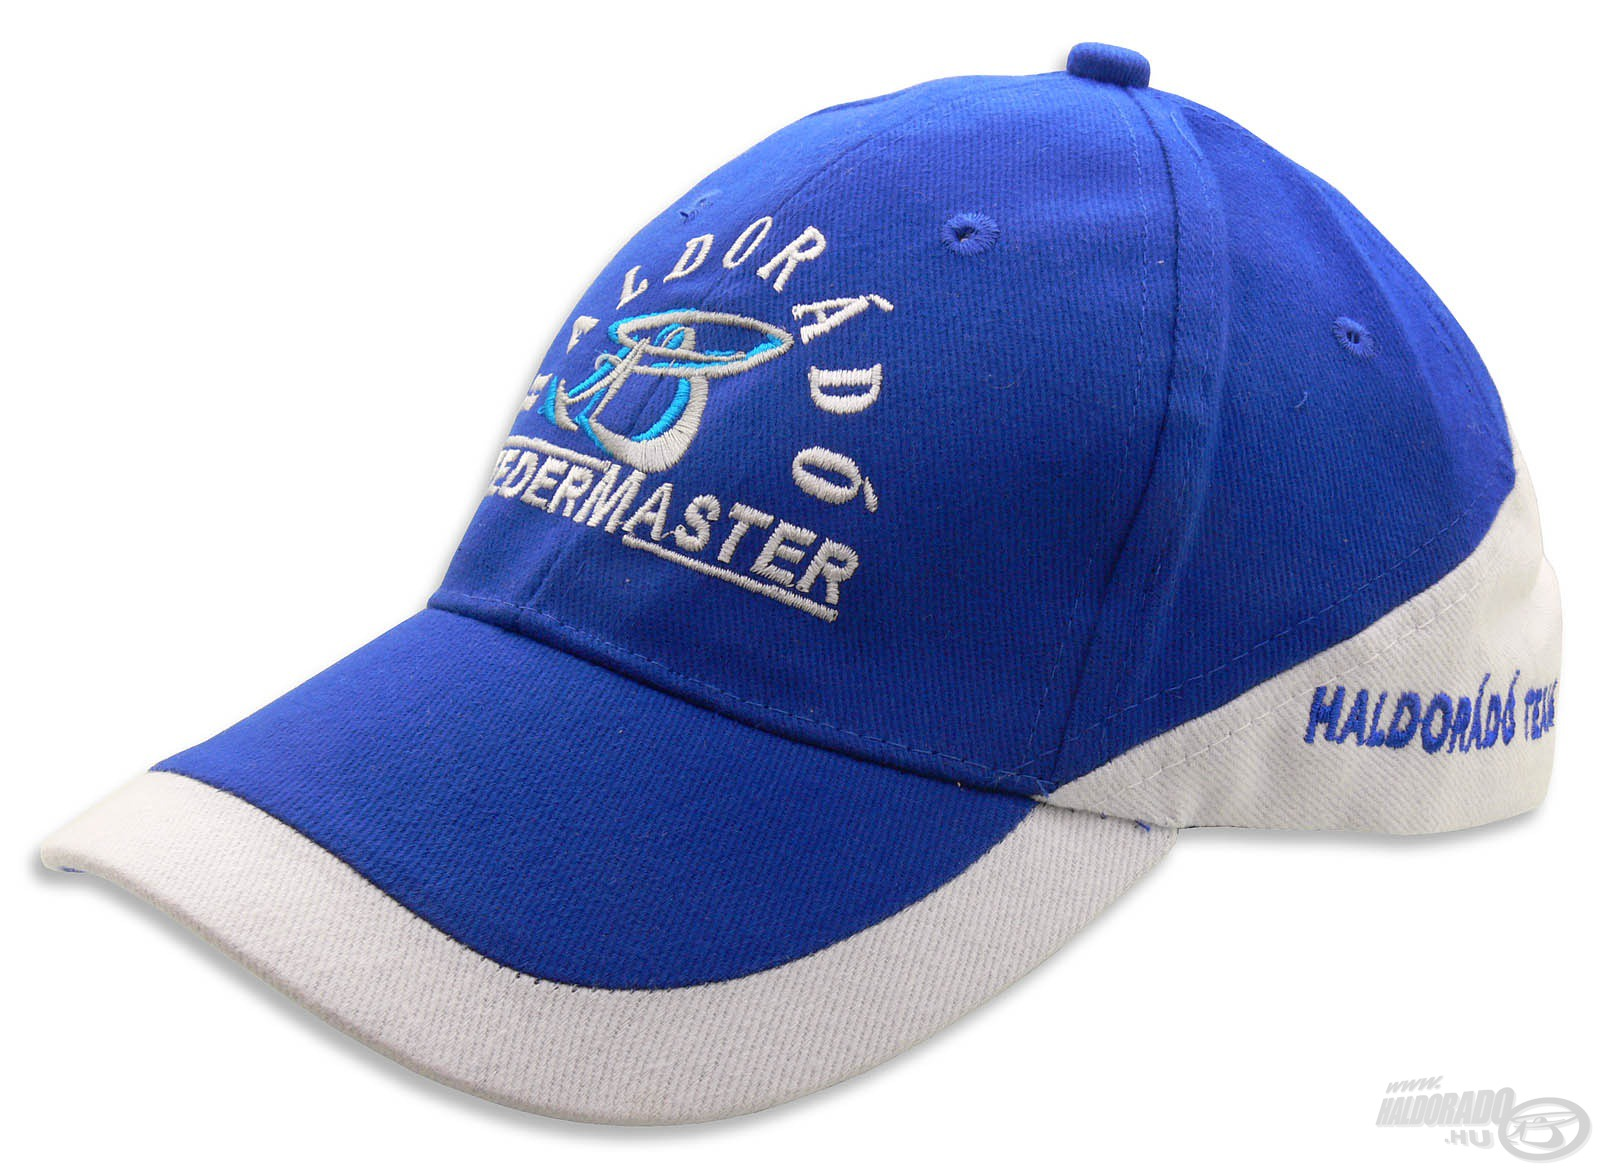 HALDOR�D� New Team Cap 2016 White&Blue 4490Ft